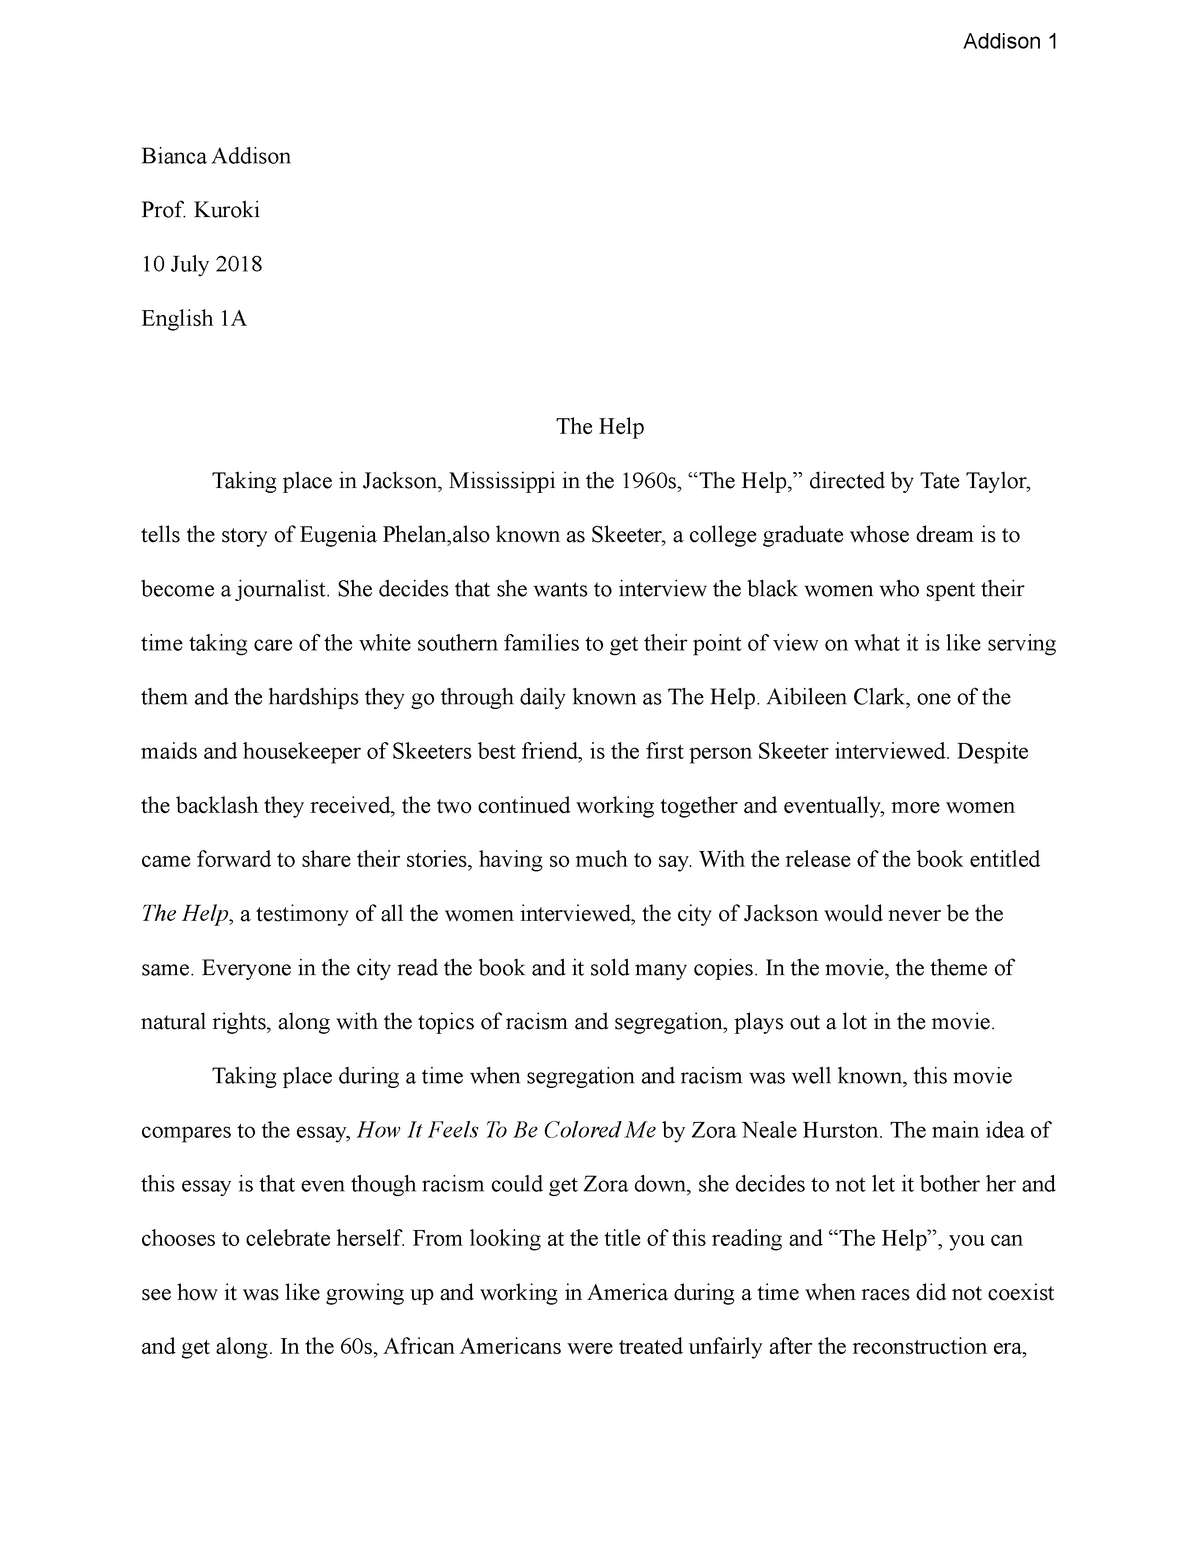 The Help Essay